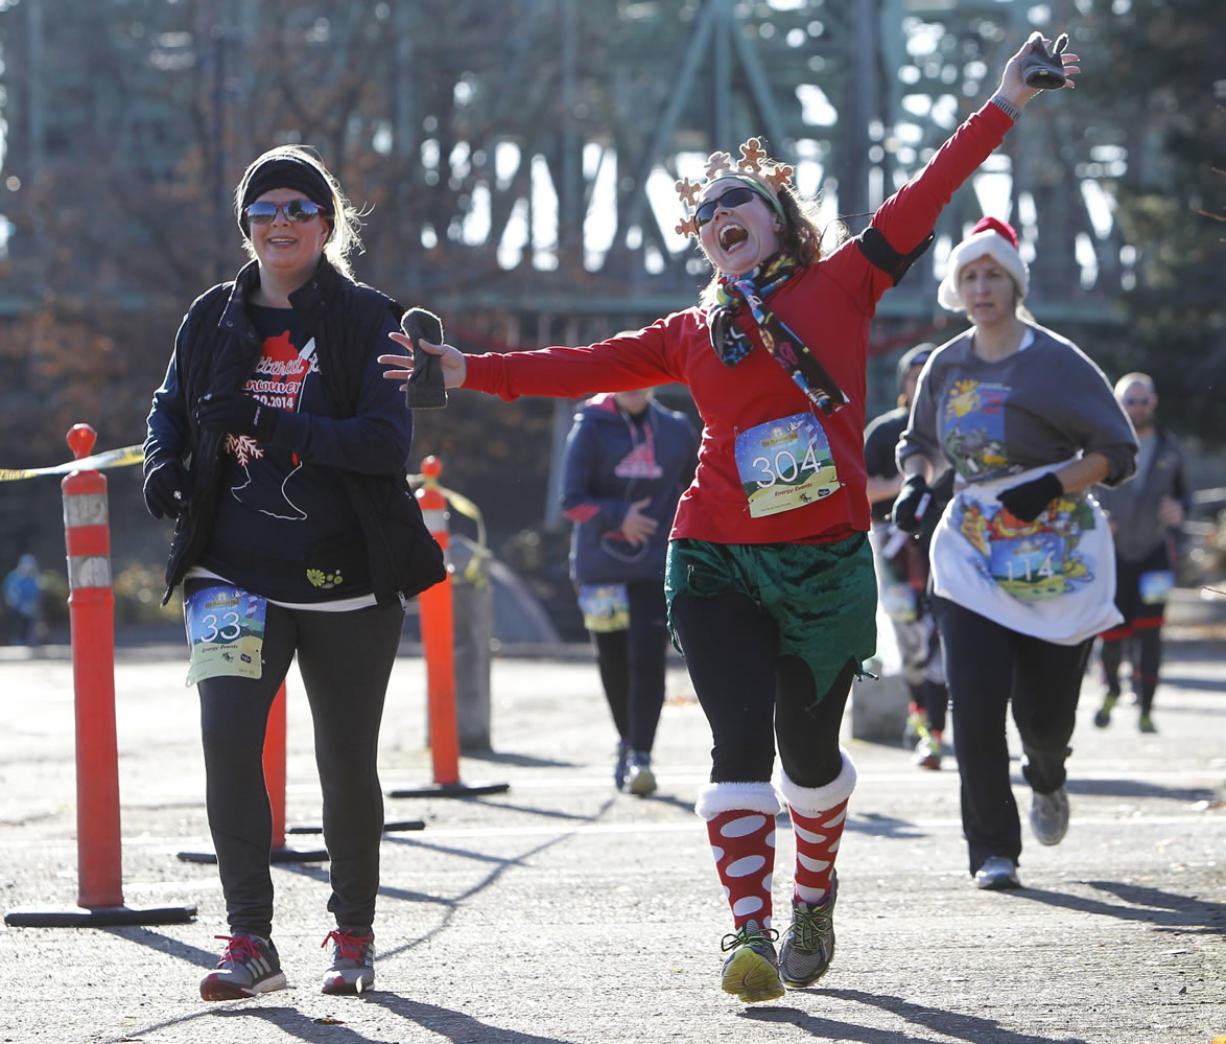 Hot Buttered Run Draws Hundreds Into The Cold - Columbiancom-1870